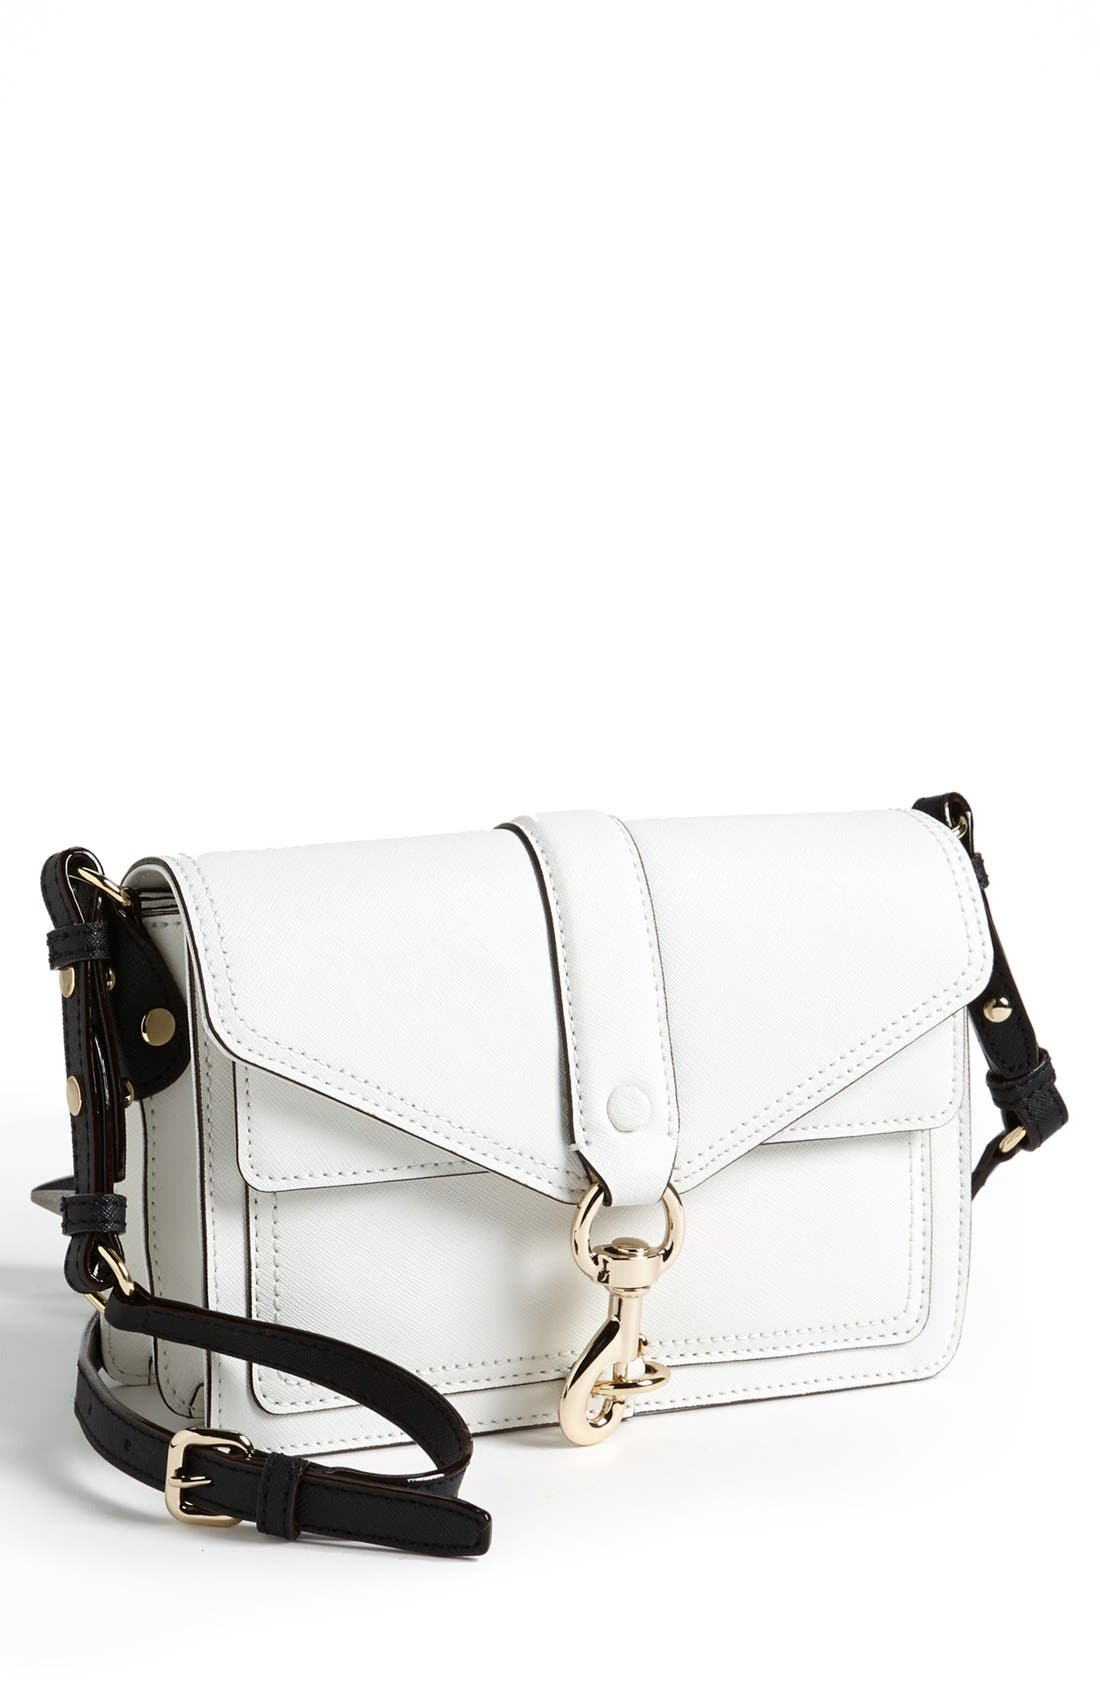 Alternate Image 1 Selected - Rebecca Minkoff 'Hudson Mini Moto' Crossbody Bag